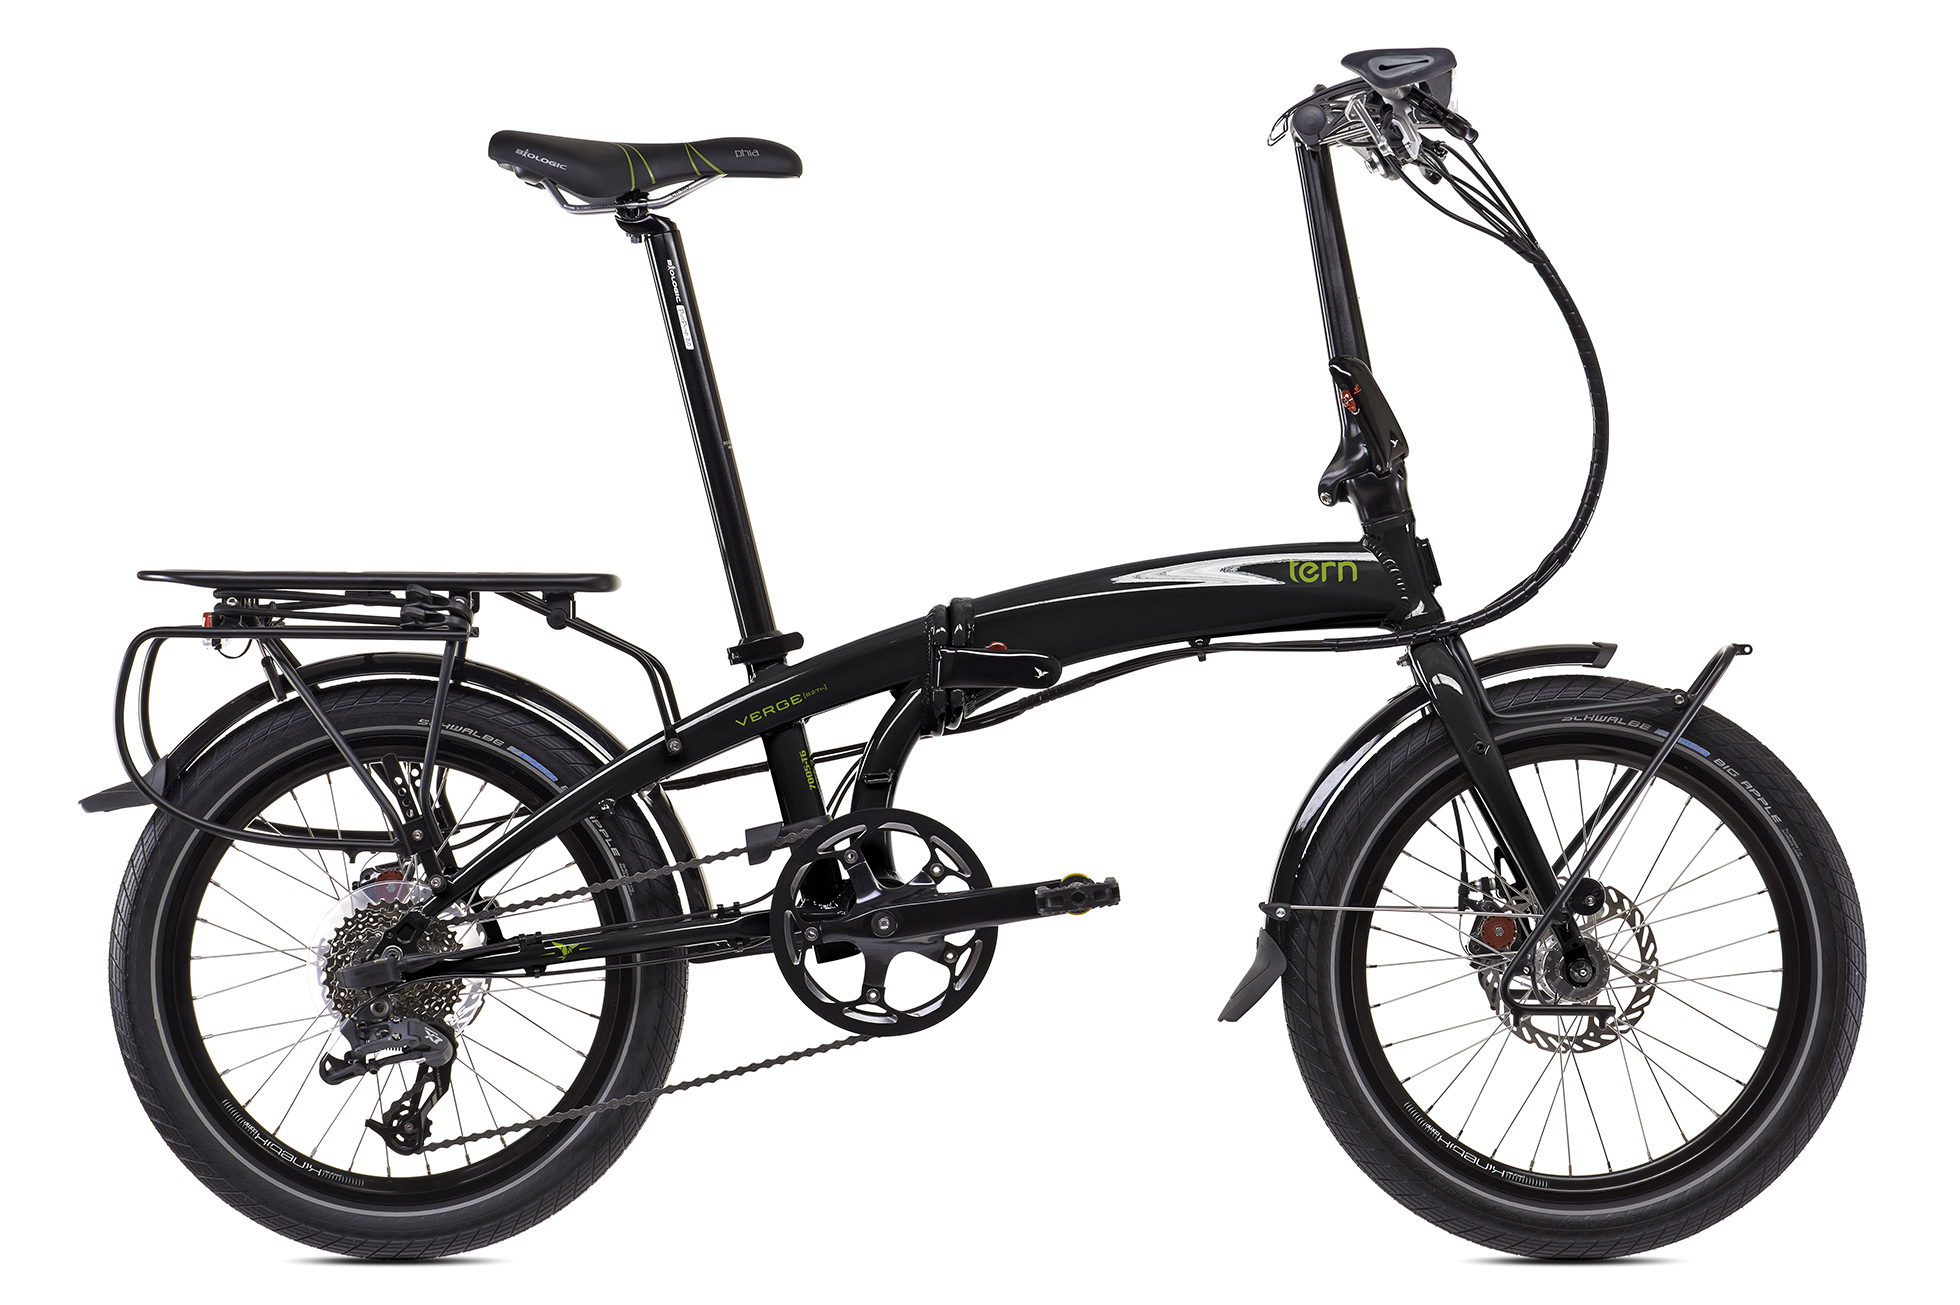 Verge S27h Tern Folding Bikes Philippines